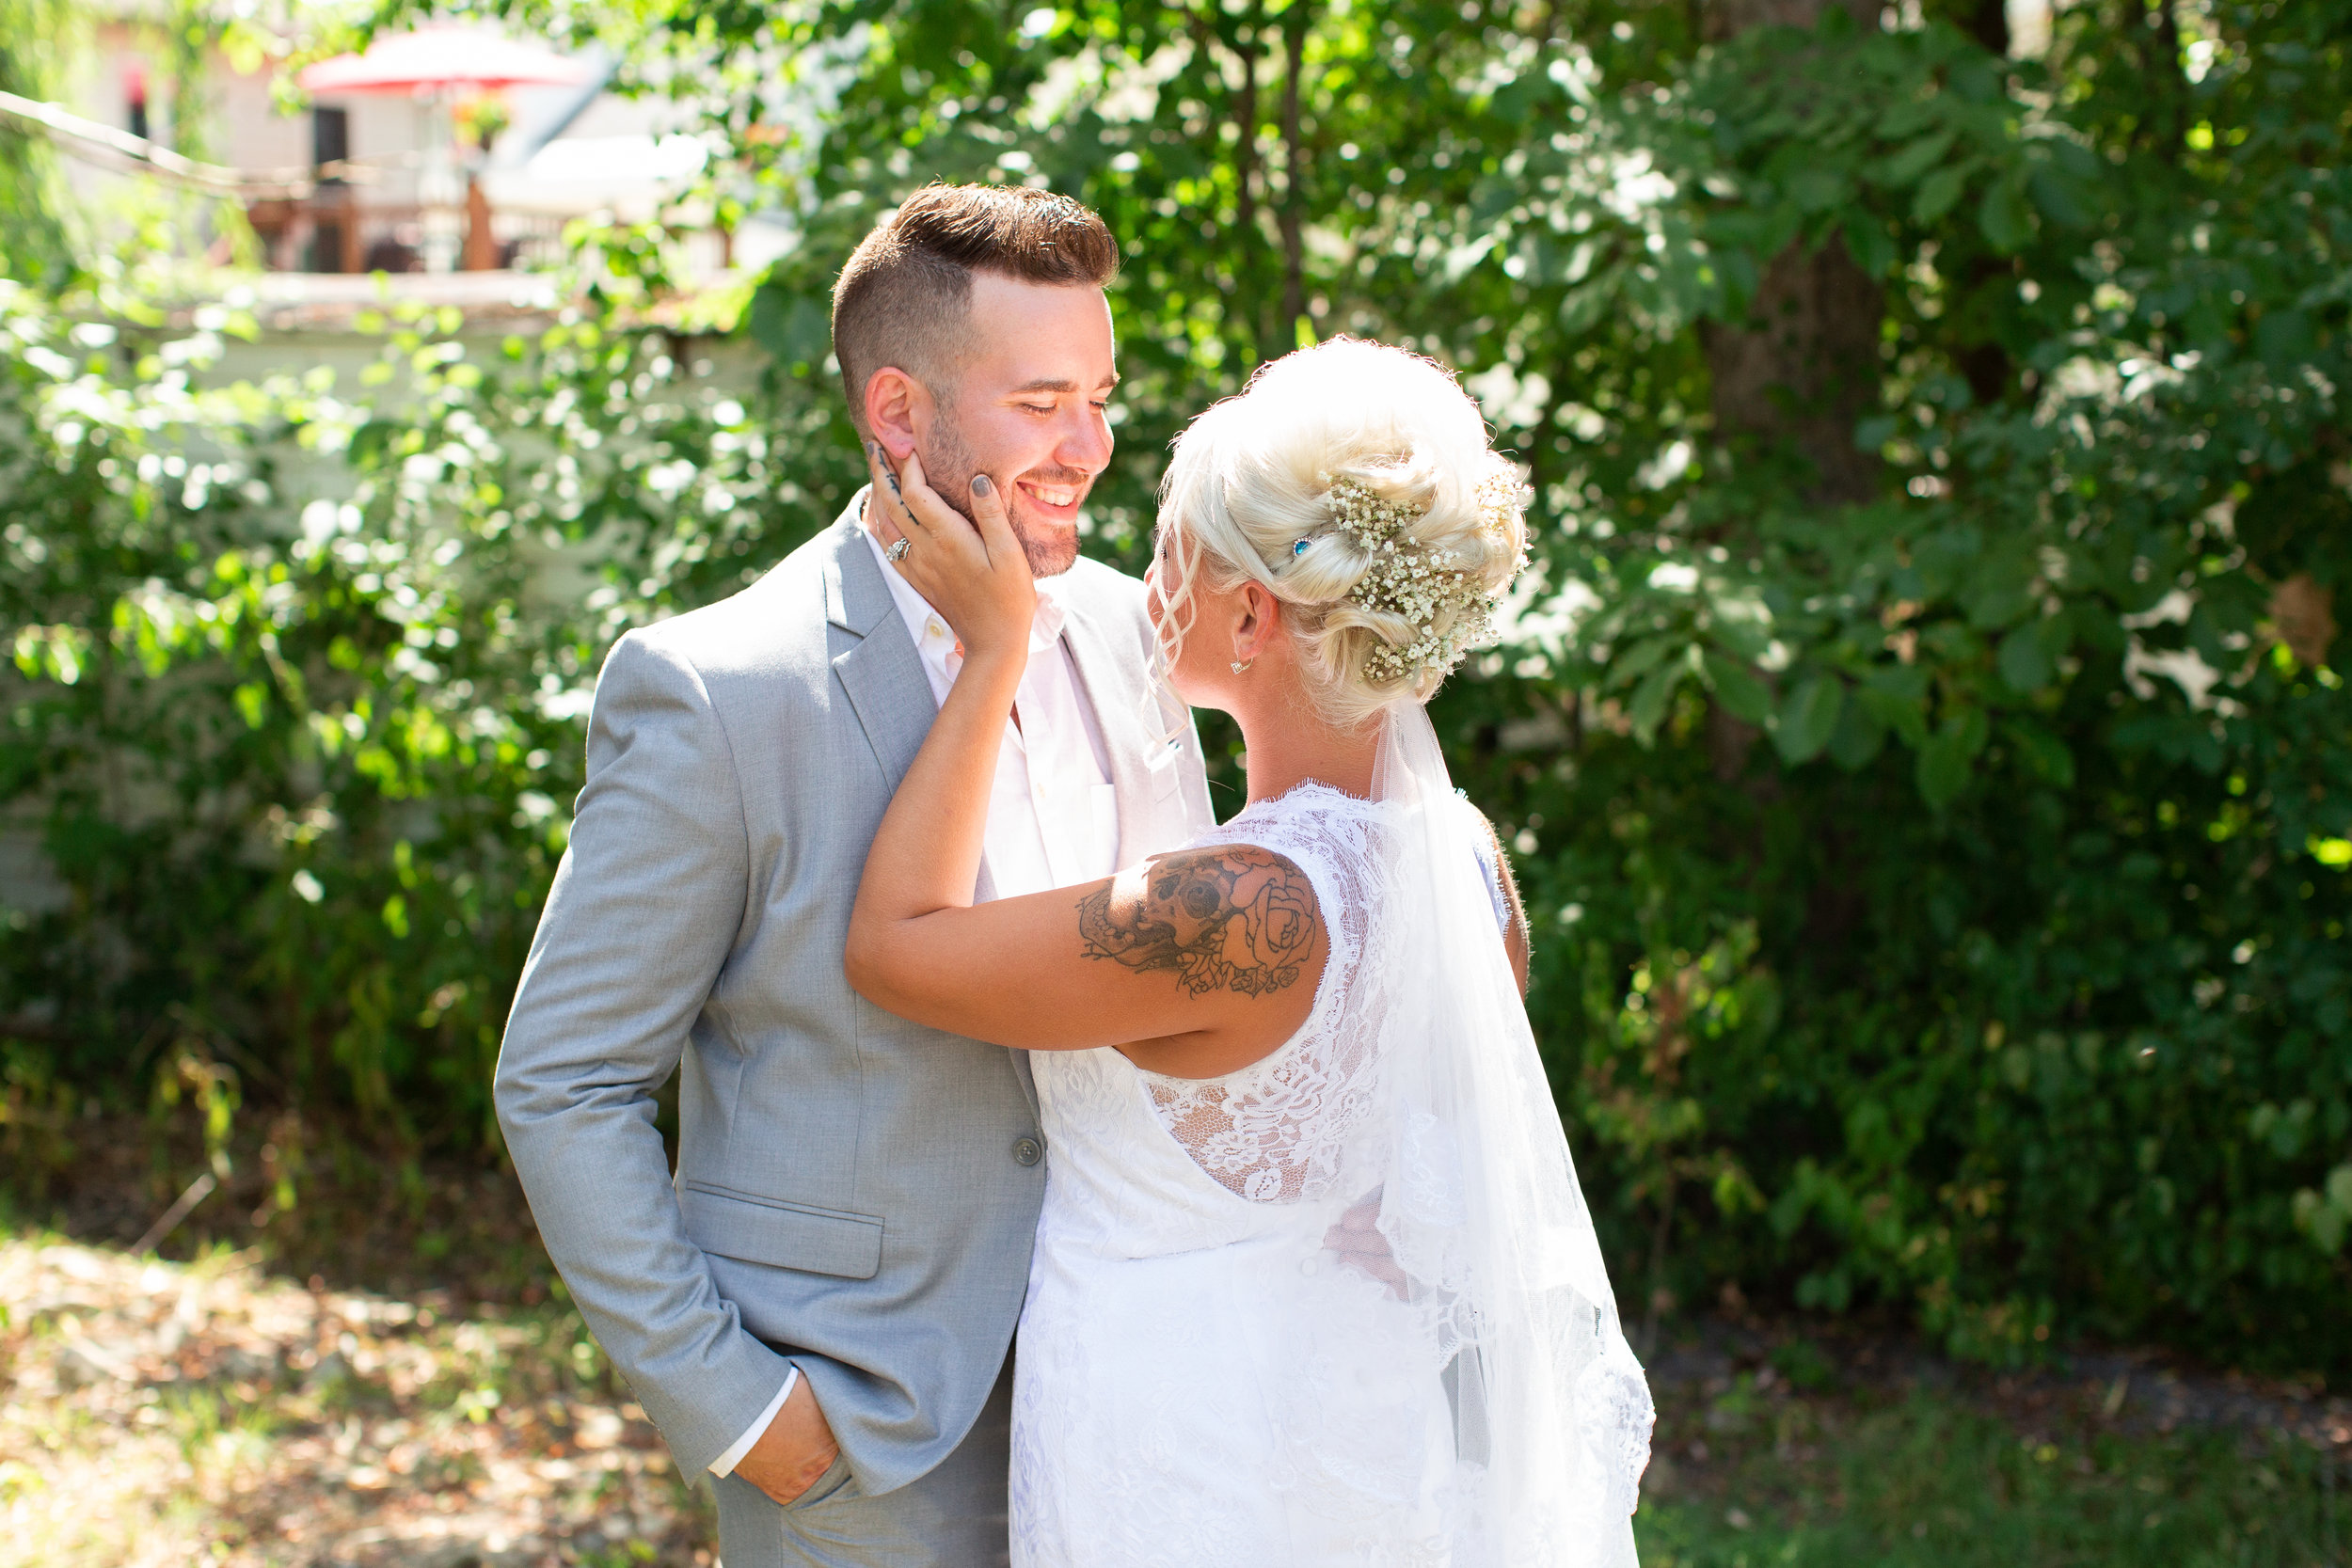 Taryn & Kory Lawrence  Vow Renewals in East Greenbush, New York